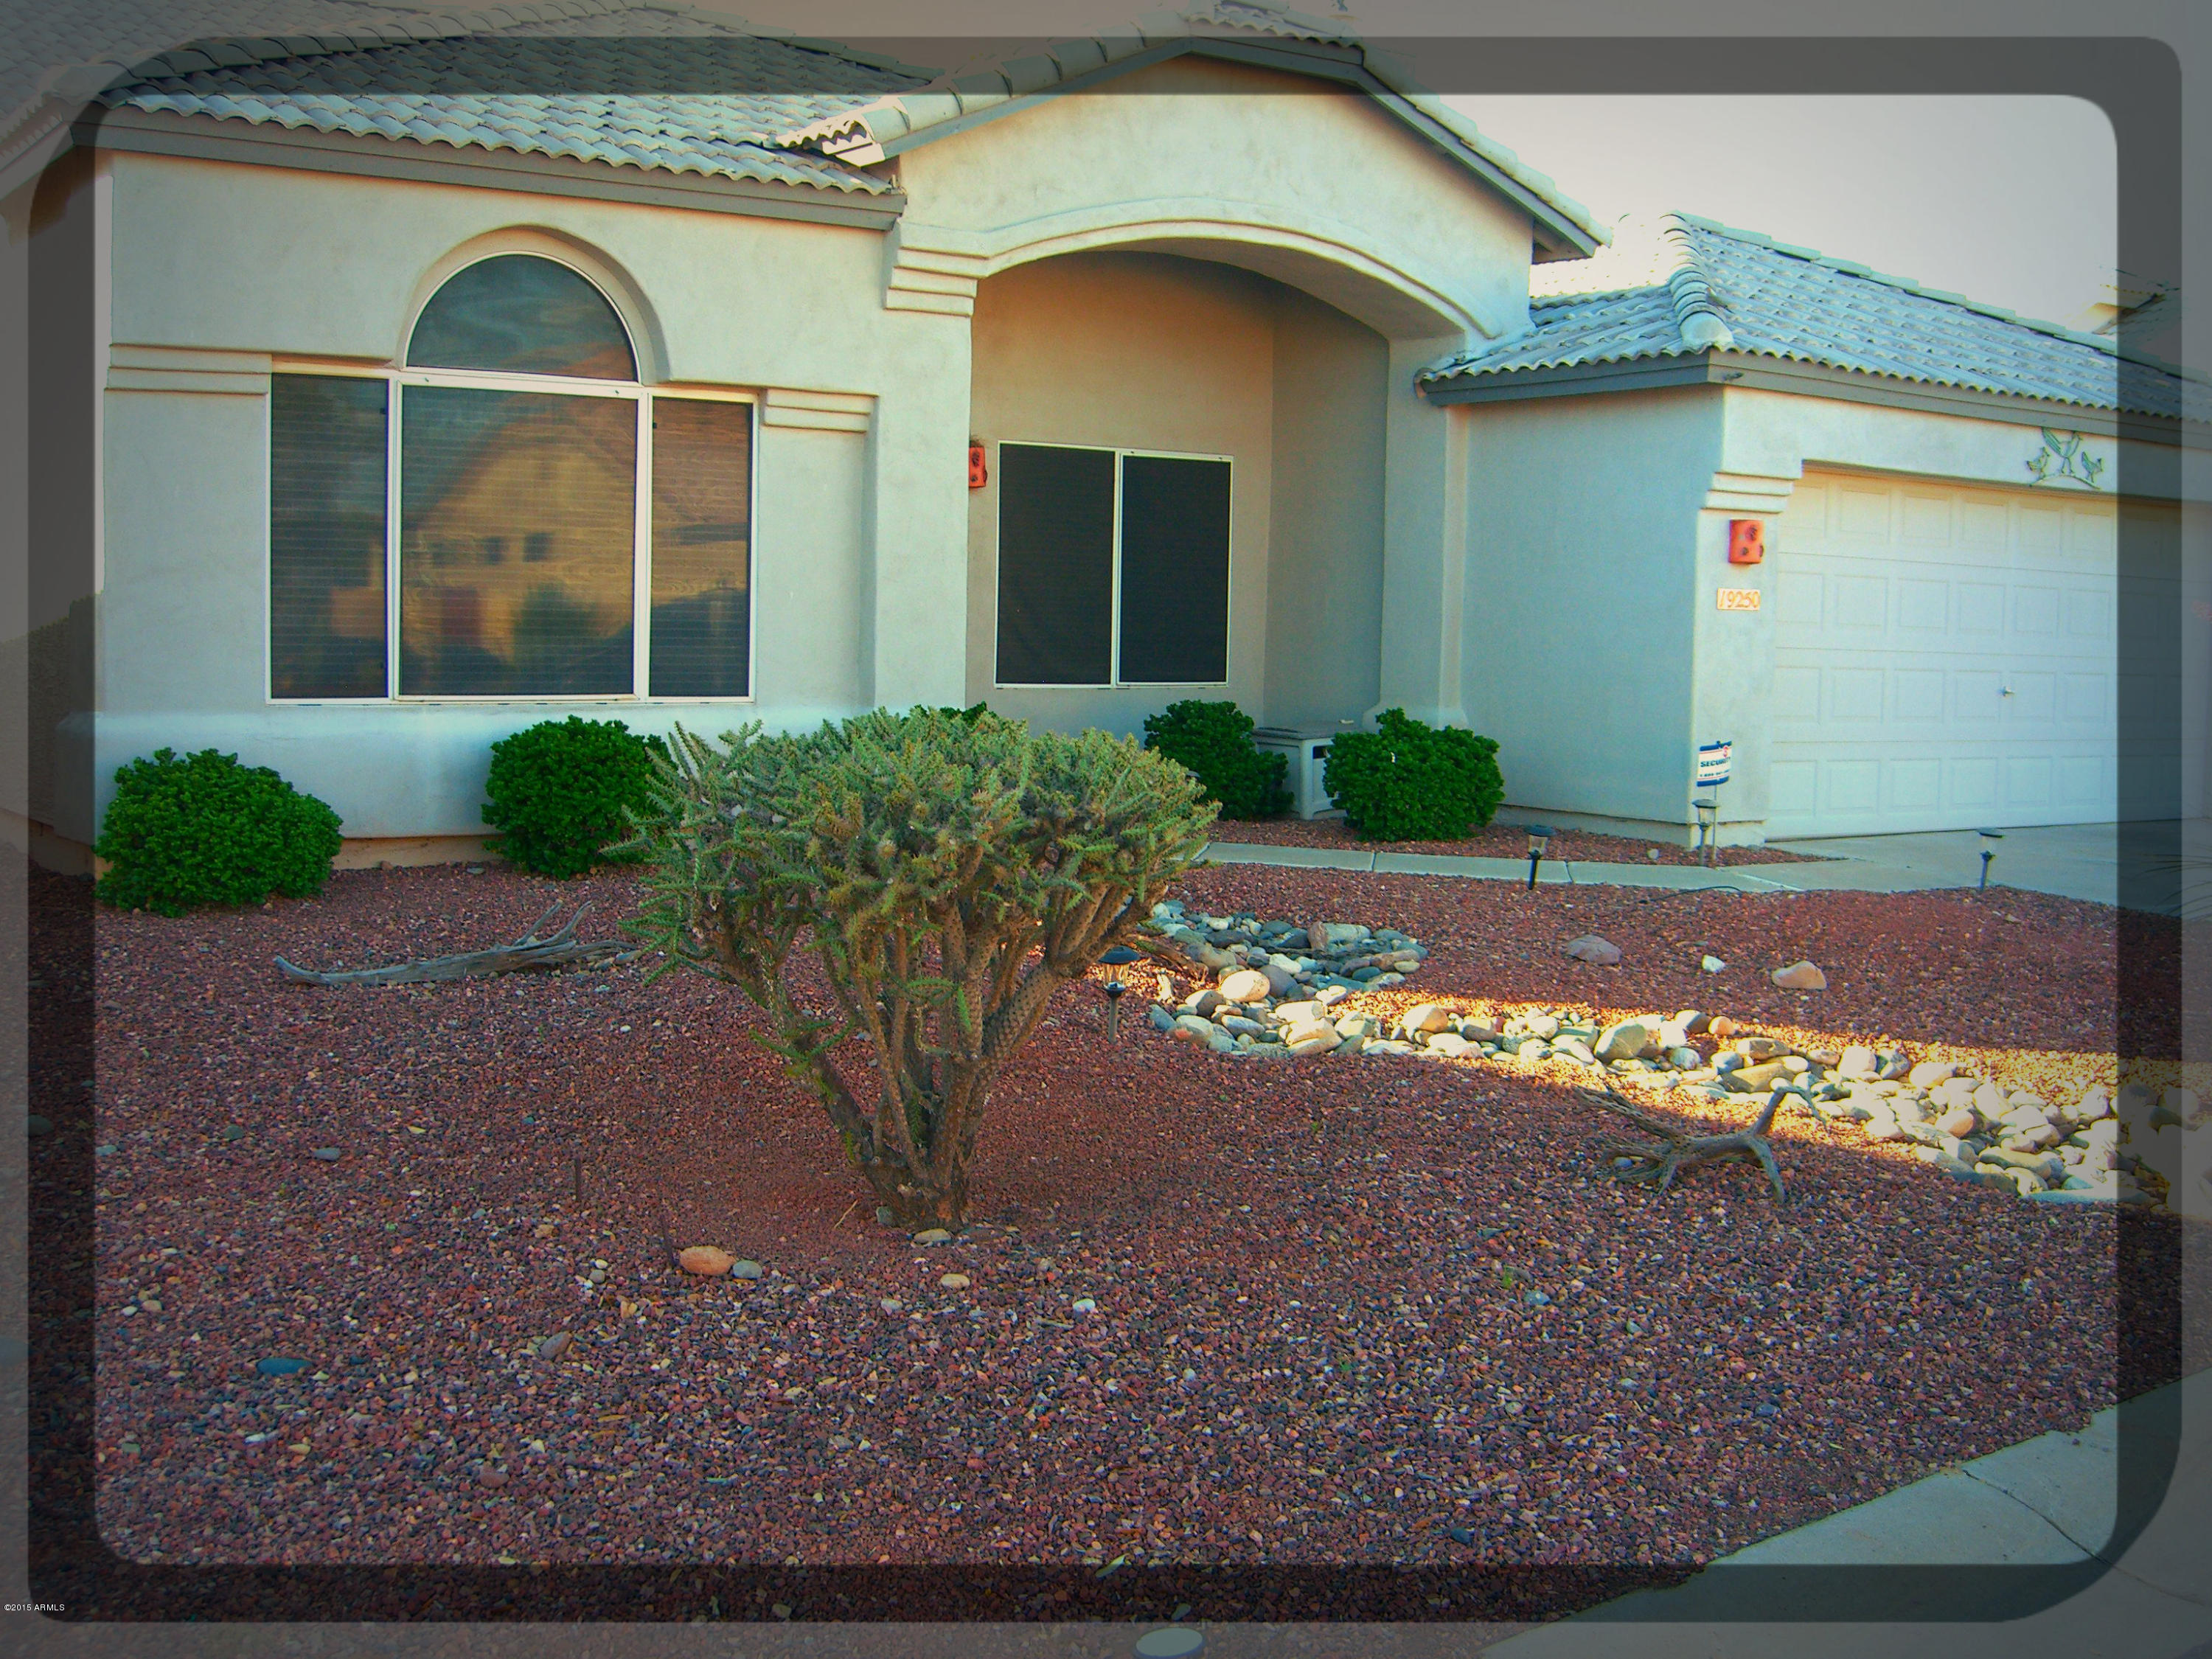 19250 N 116TH Lane, Surprise, AZ 85378 (MLS# 5273085) |